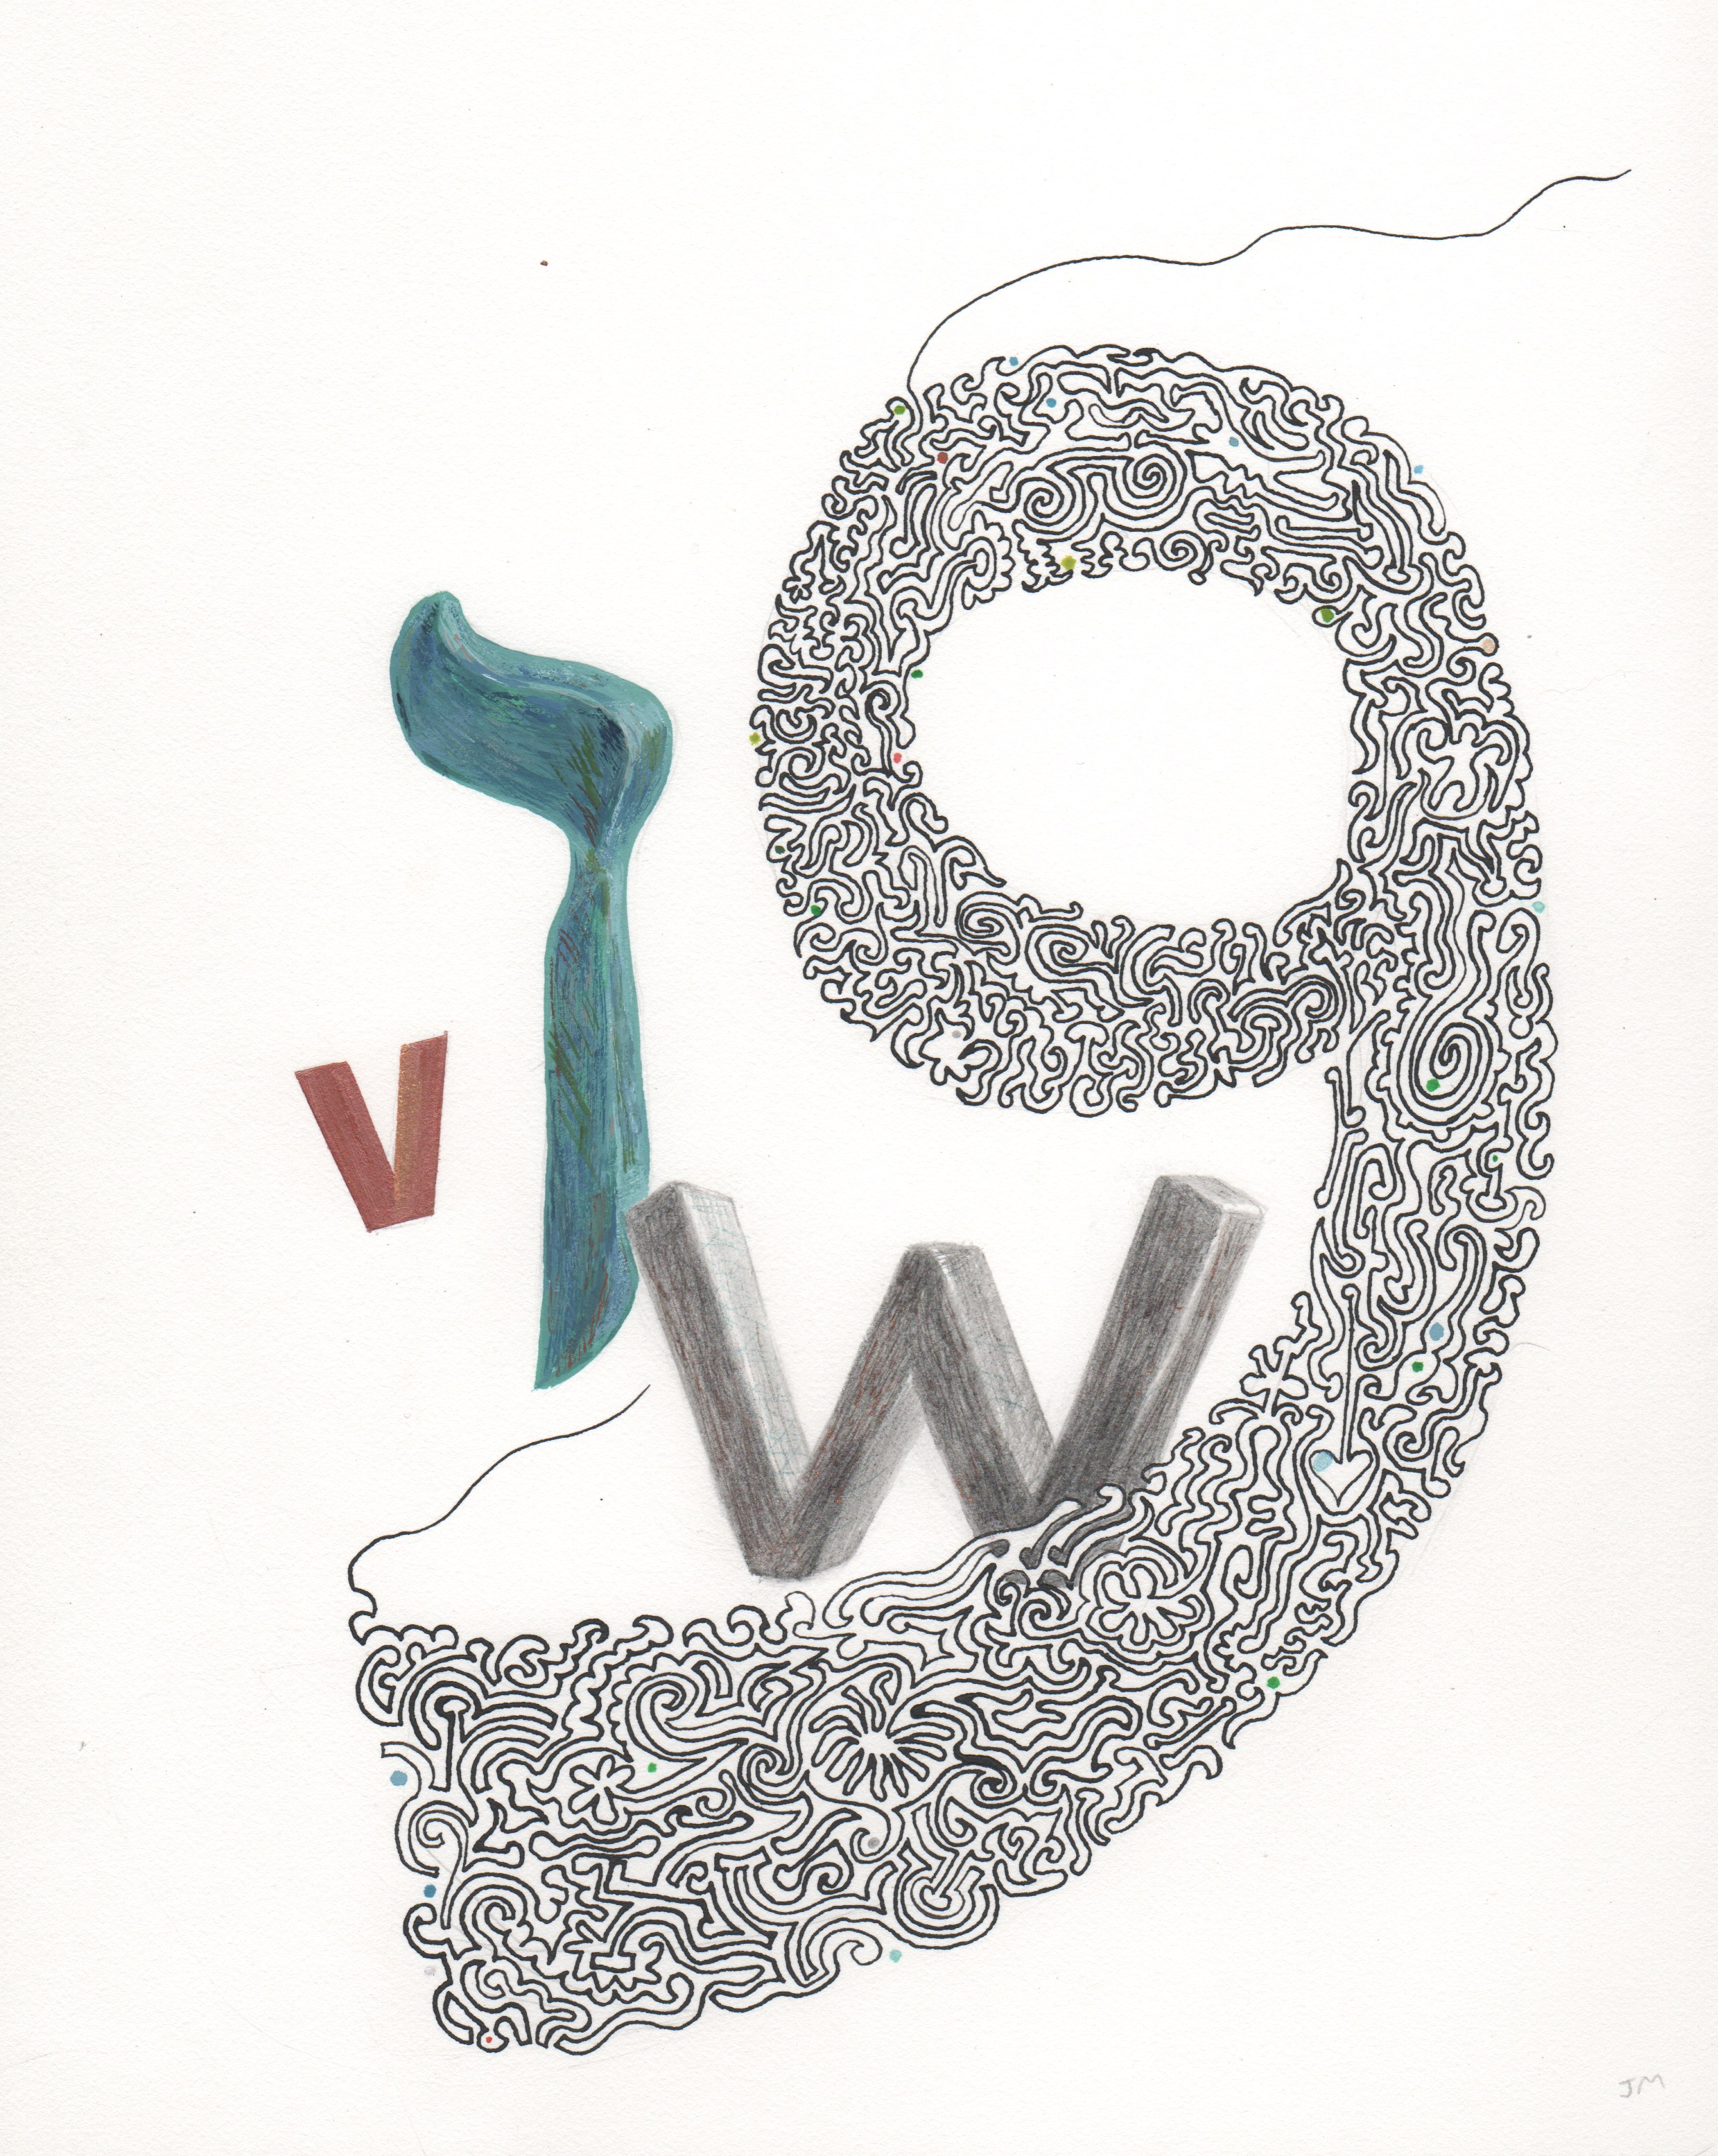 Joel Moskowitz, Arabic Waaw, Hebrew Vav, with V and W